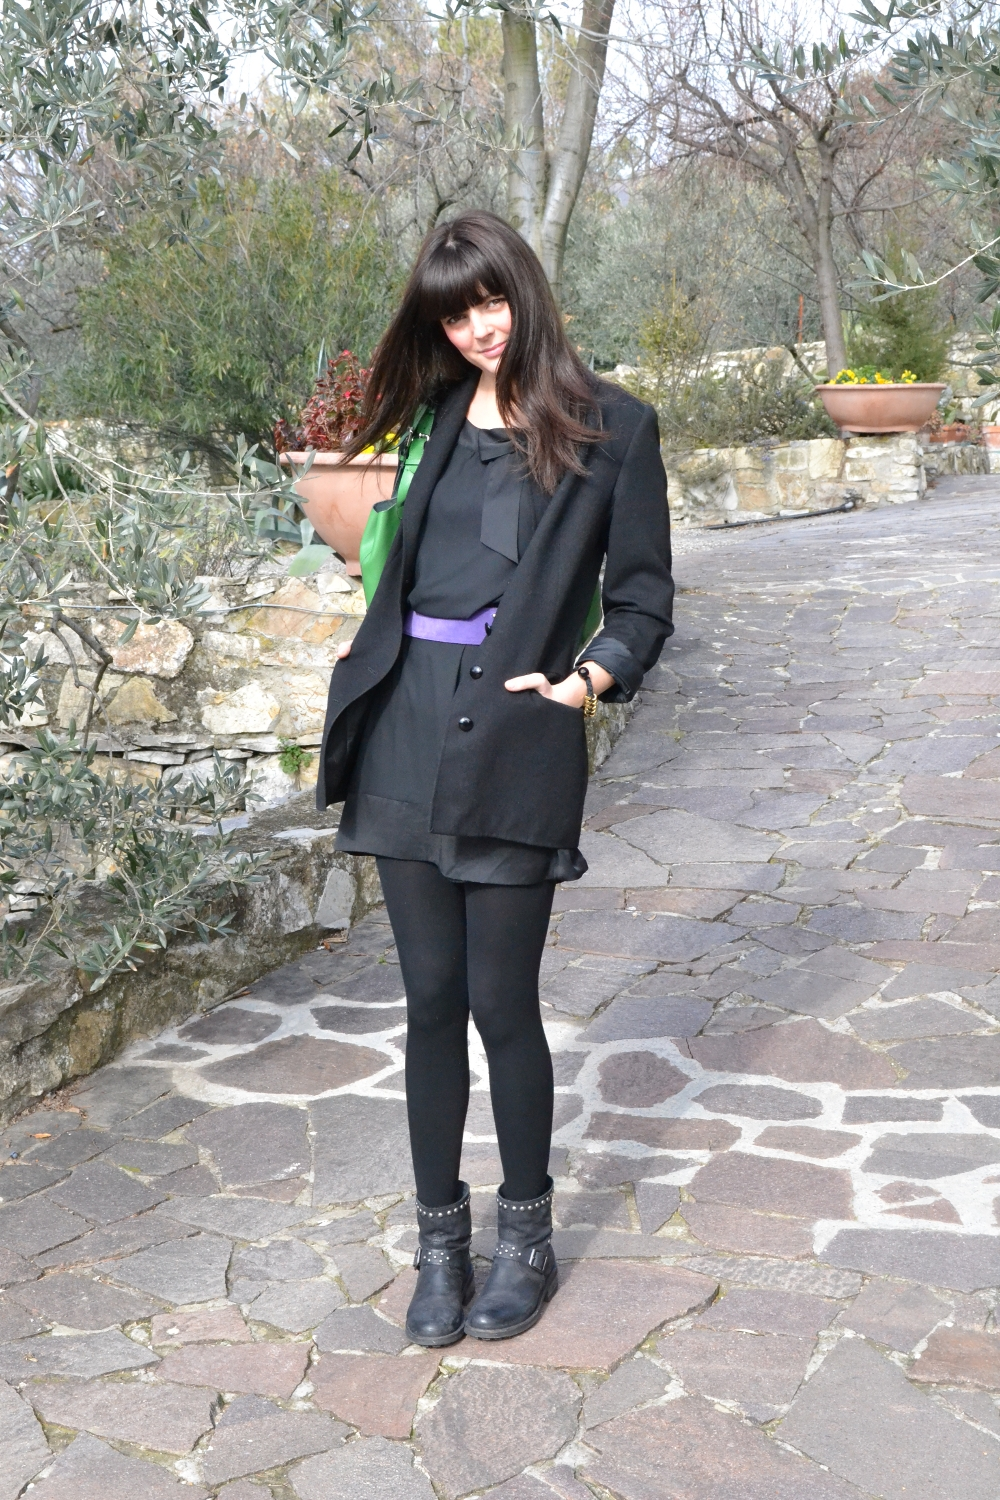 sonia fortuna belt,  H&M dress, vintage byblos jacket